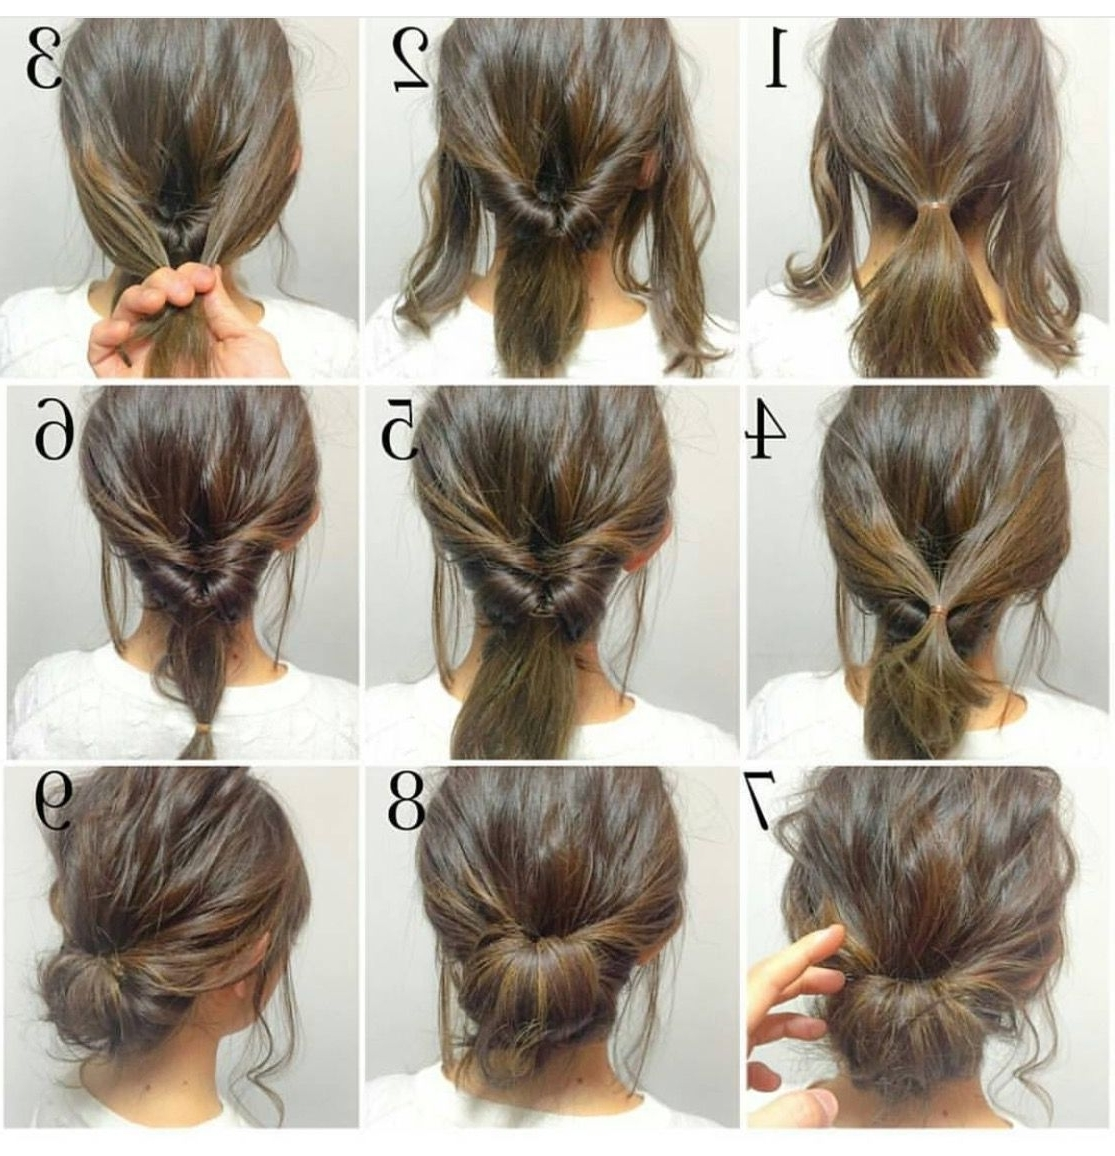 4 Messy Updos For Long Hair | Hairz | Pinterest | Updos, Hair Style Throughout Easy Updo Hairstyles For Medium Hair To Do Yourself (View 5 of 15)